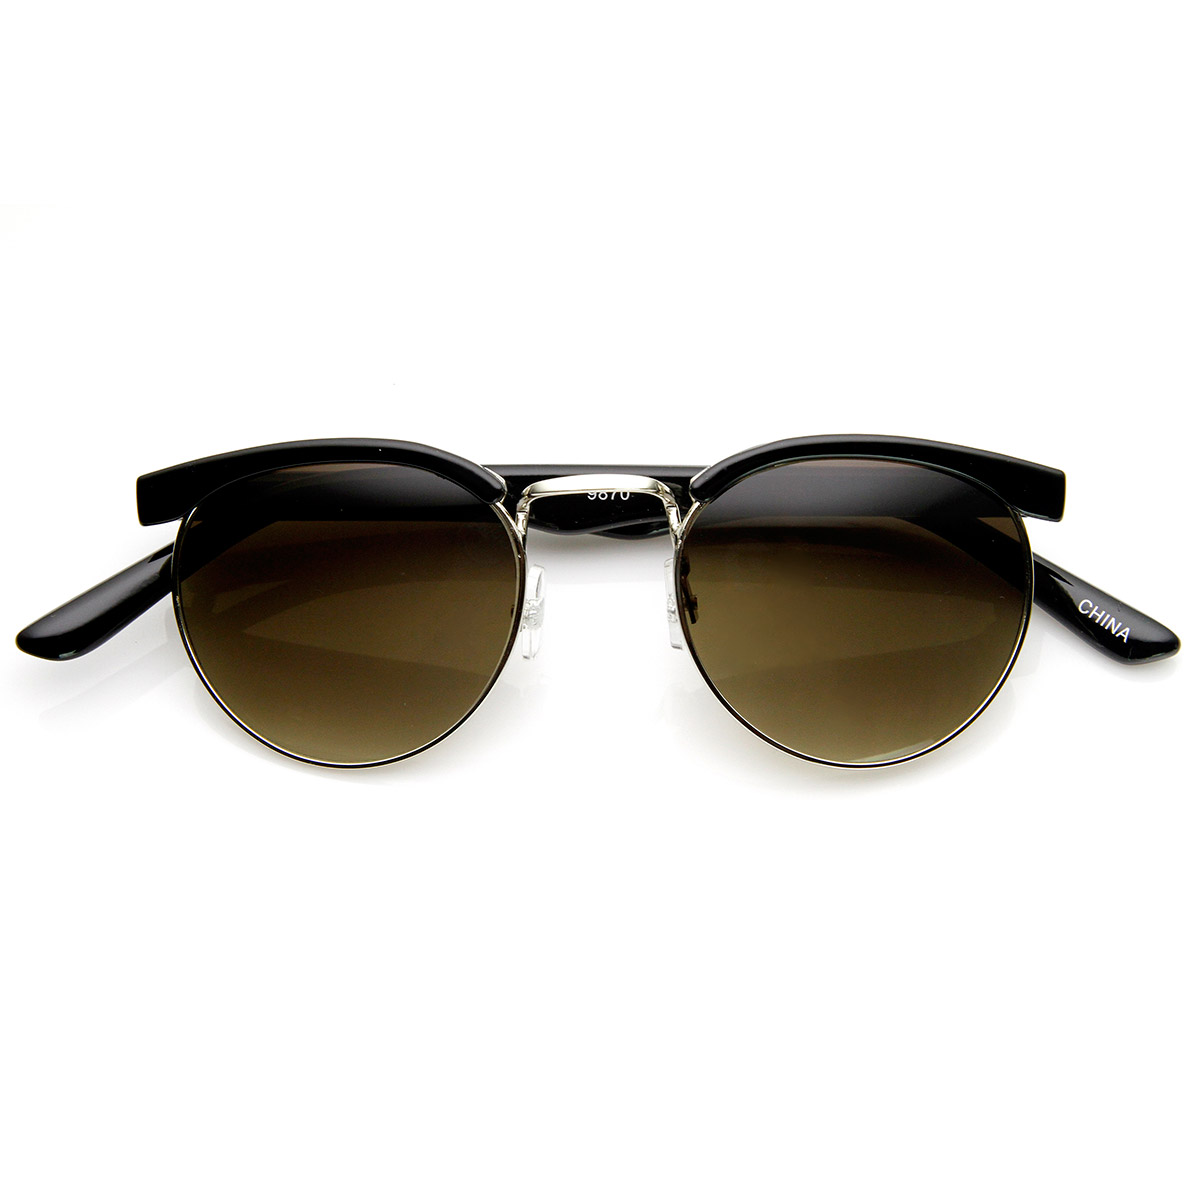 Small Retro Fashion Half Frame Circle Round Sunglasses eBay